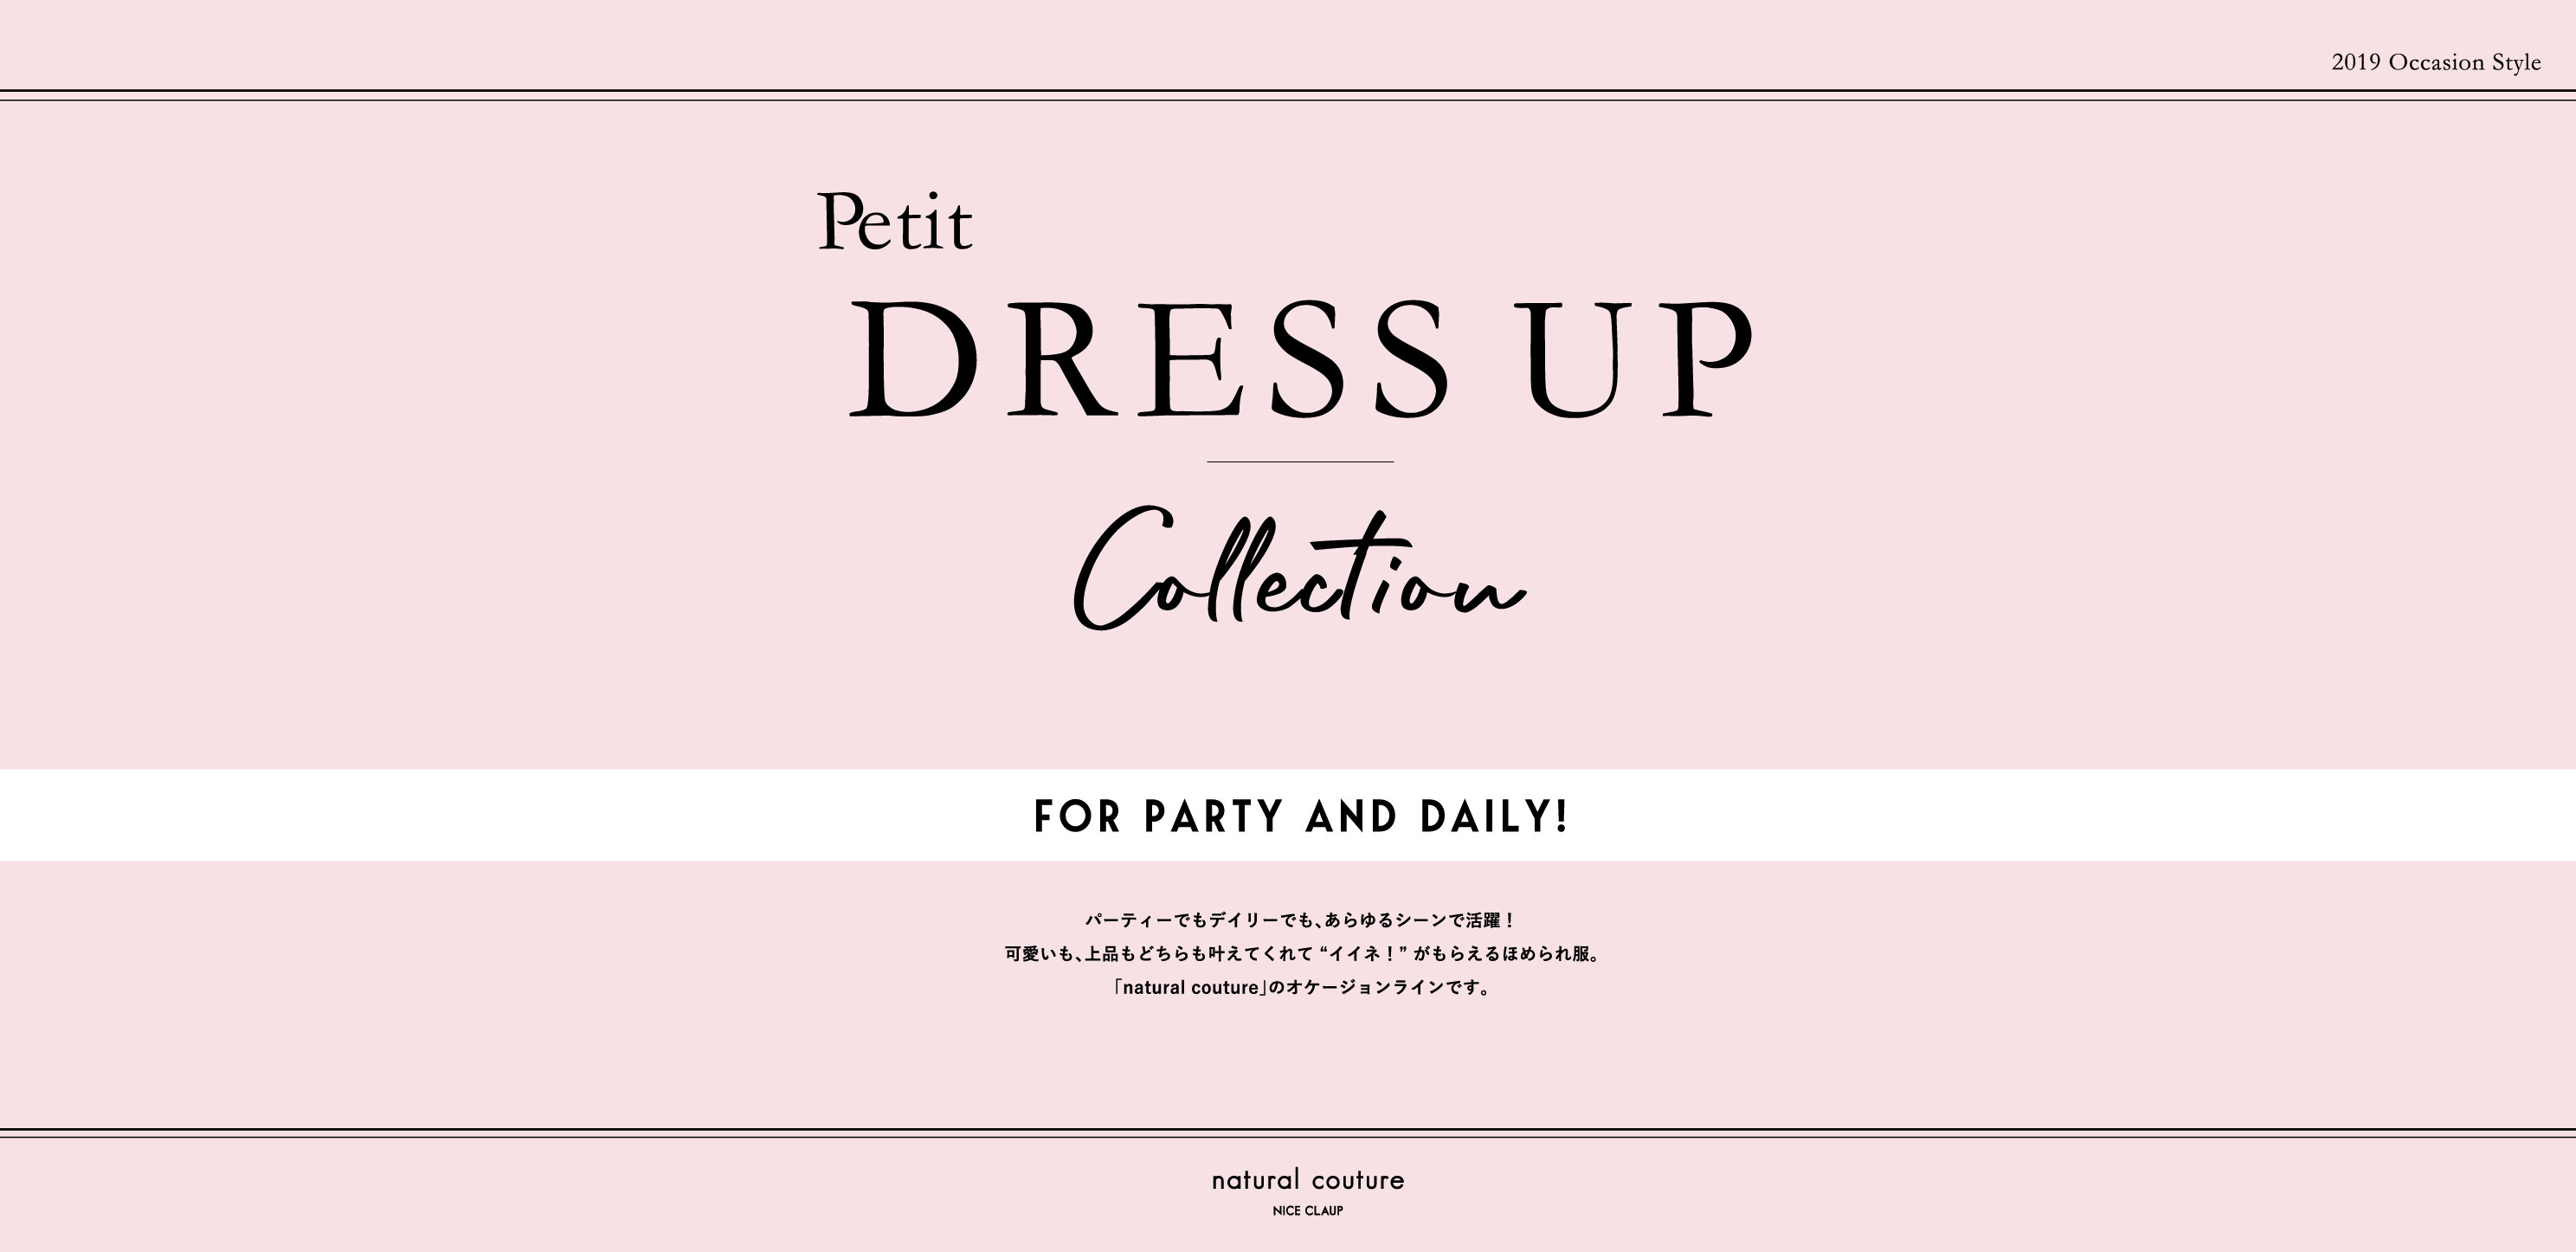 Petit DRESS UP collection